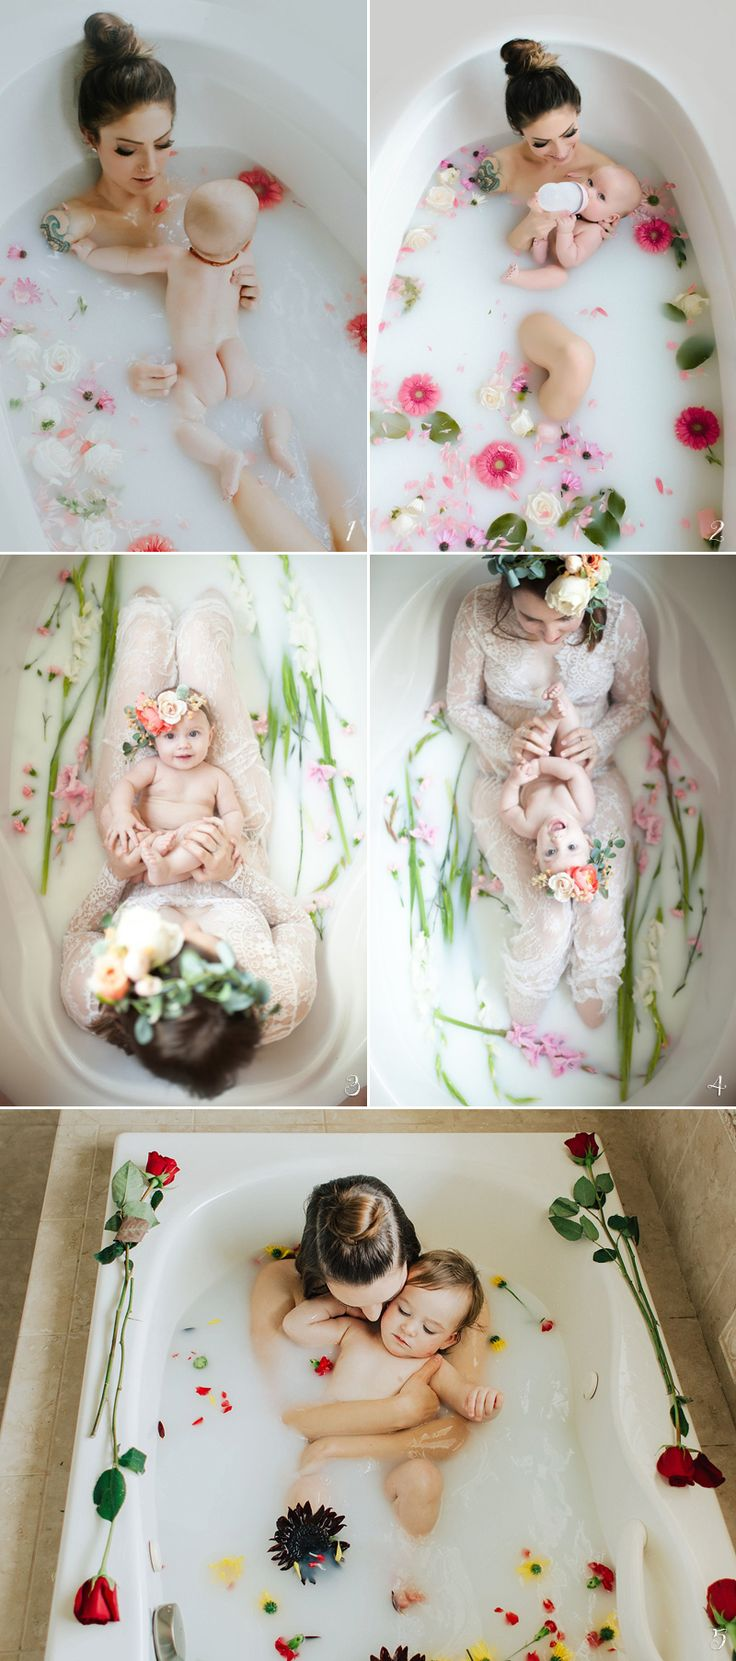 How to Pose Parents with Newborn Baby 6 Stress-Free Baby Photo Poses! Baby Milk Bath